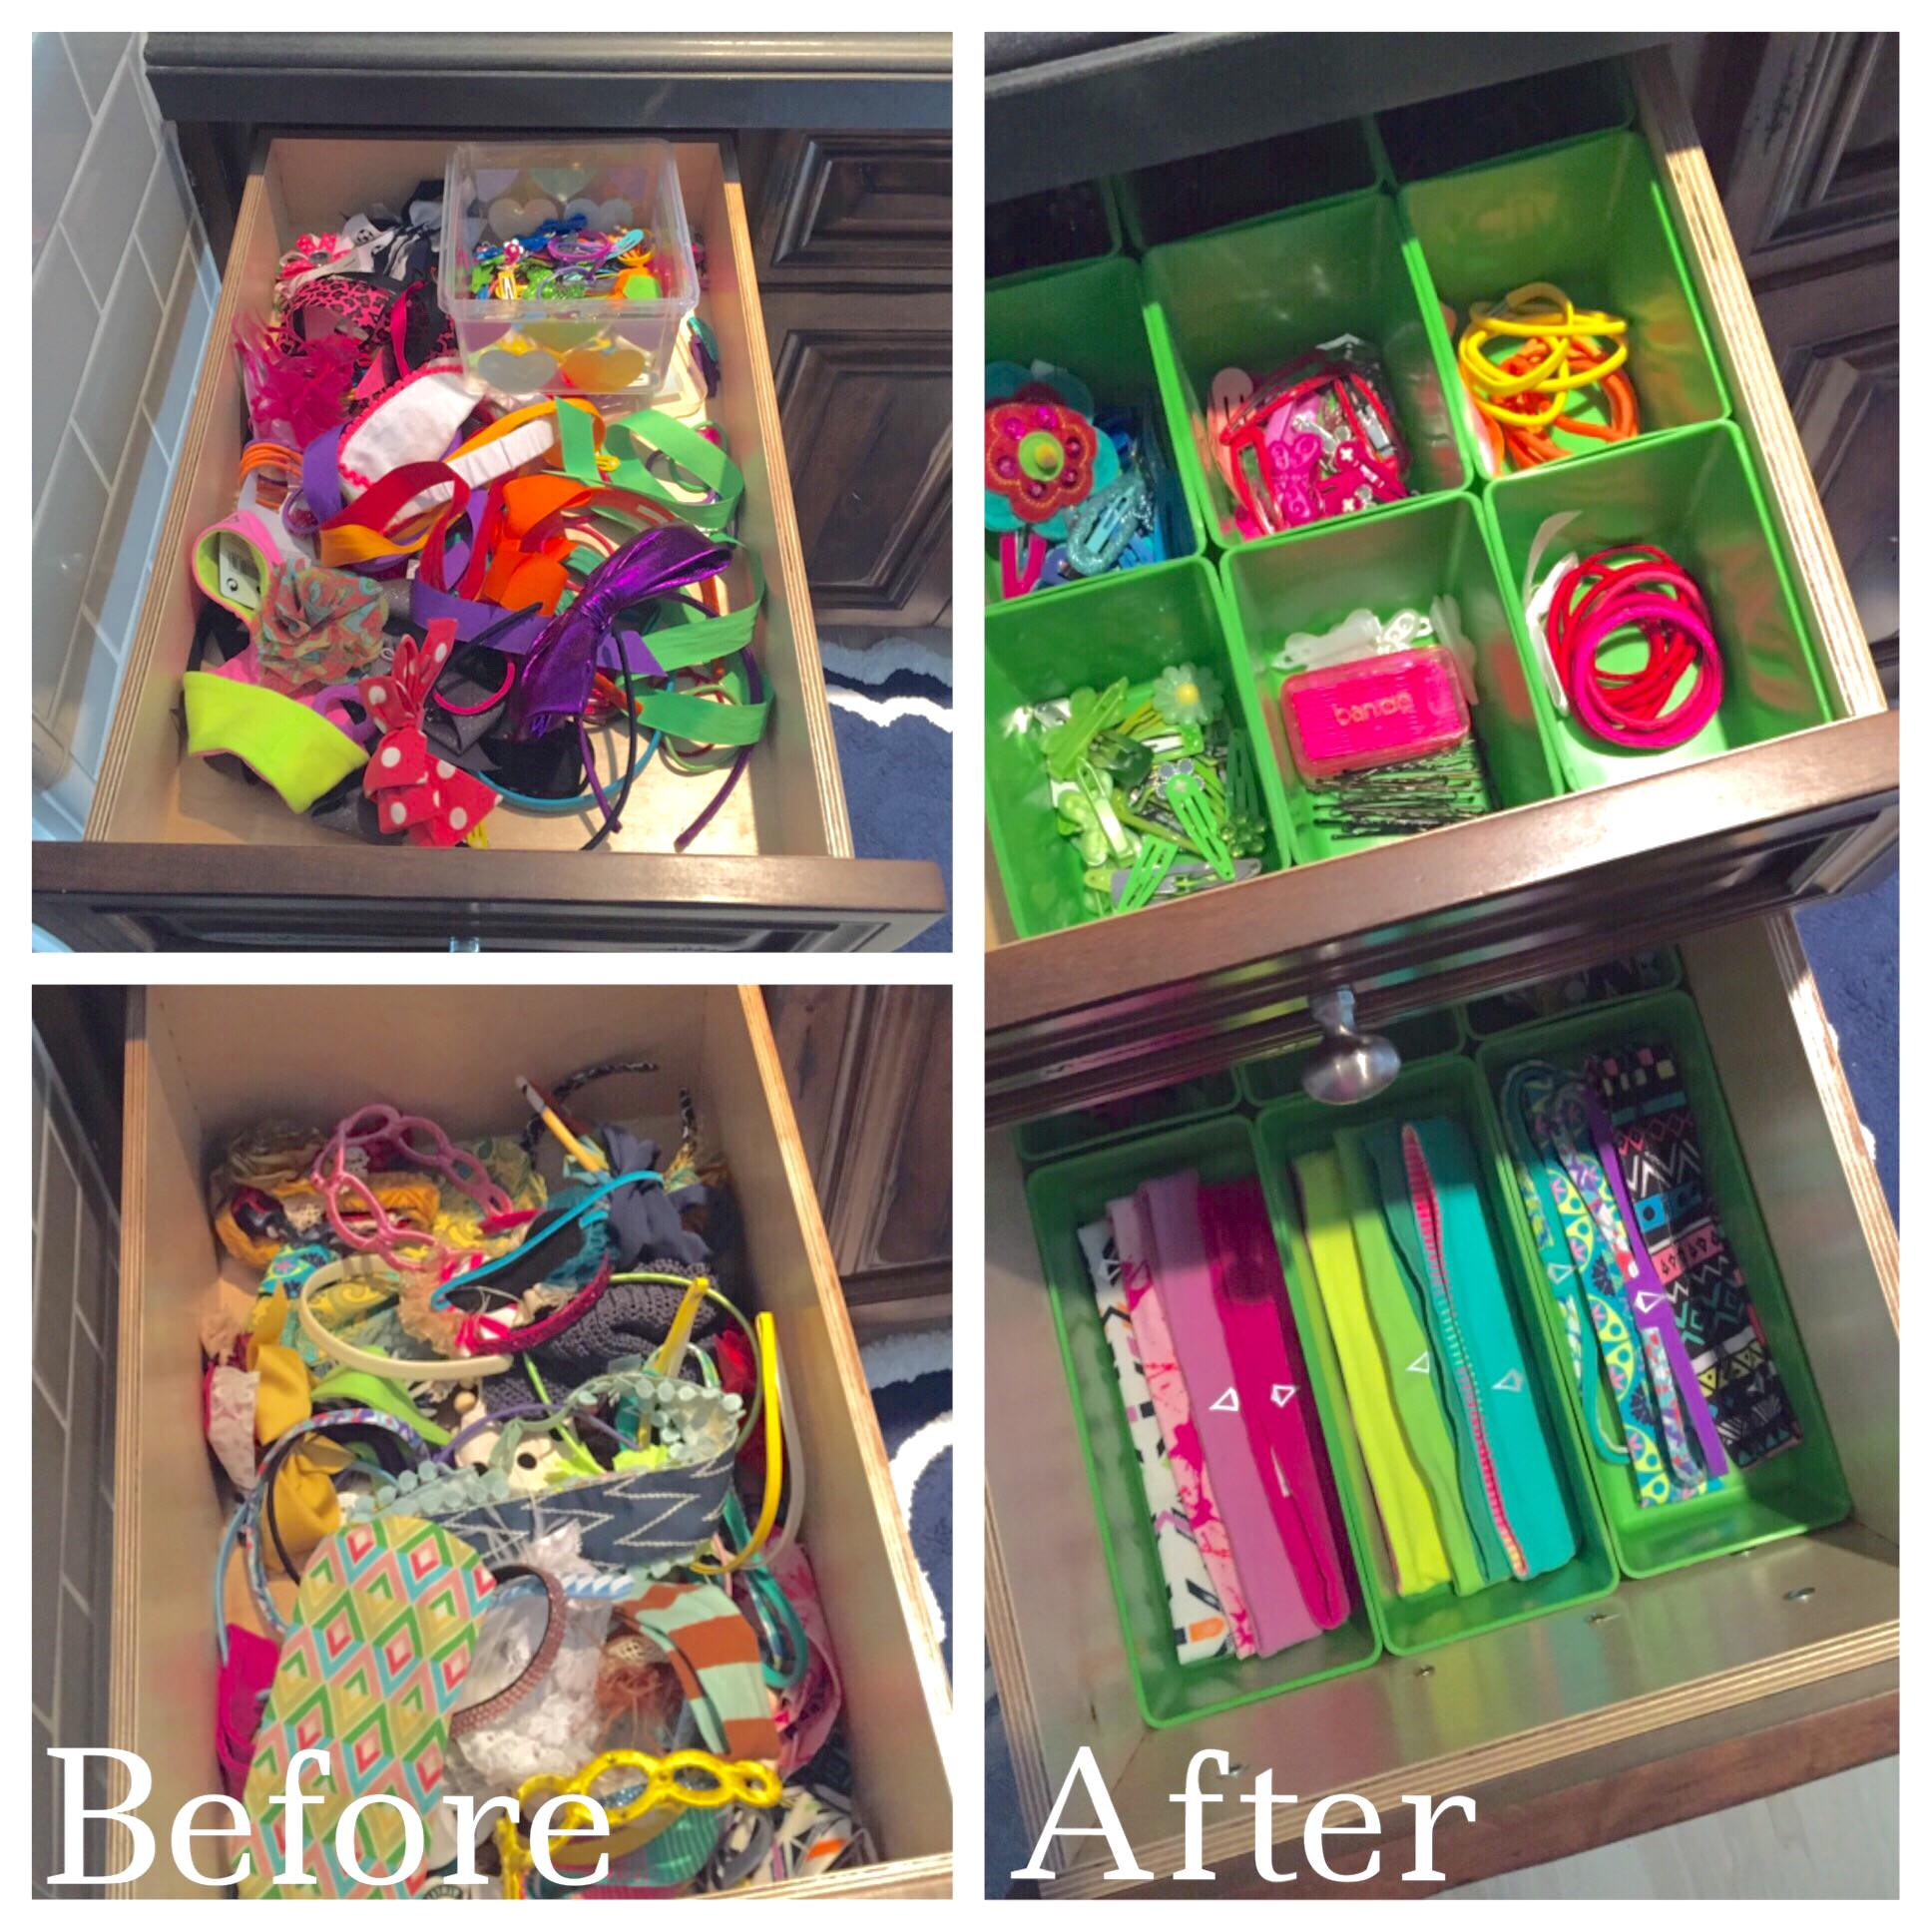 Mika Perry, Scottsdale, Phoenix, bathroom, organized, professional organizer, home organization, before and after, DIY, kids, hair accessories, head bands, bows, hair clips, home organization